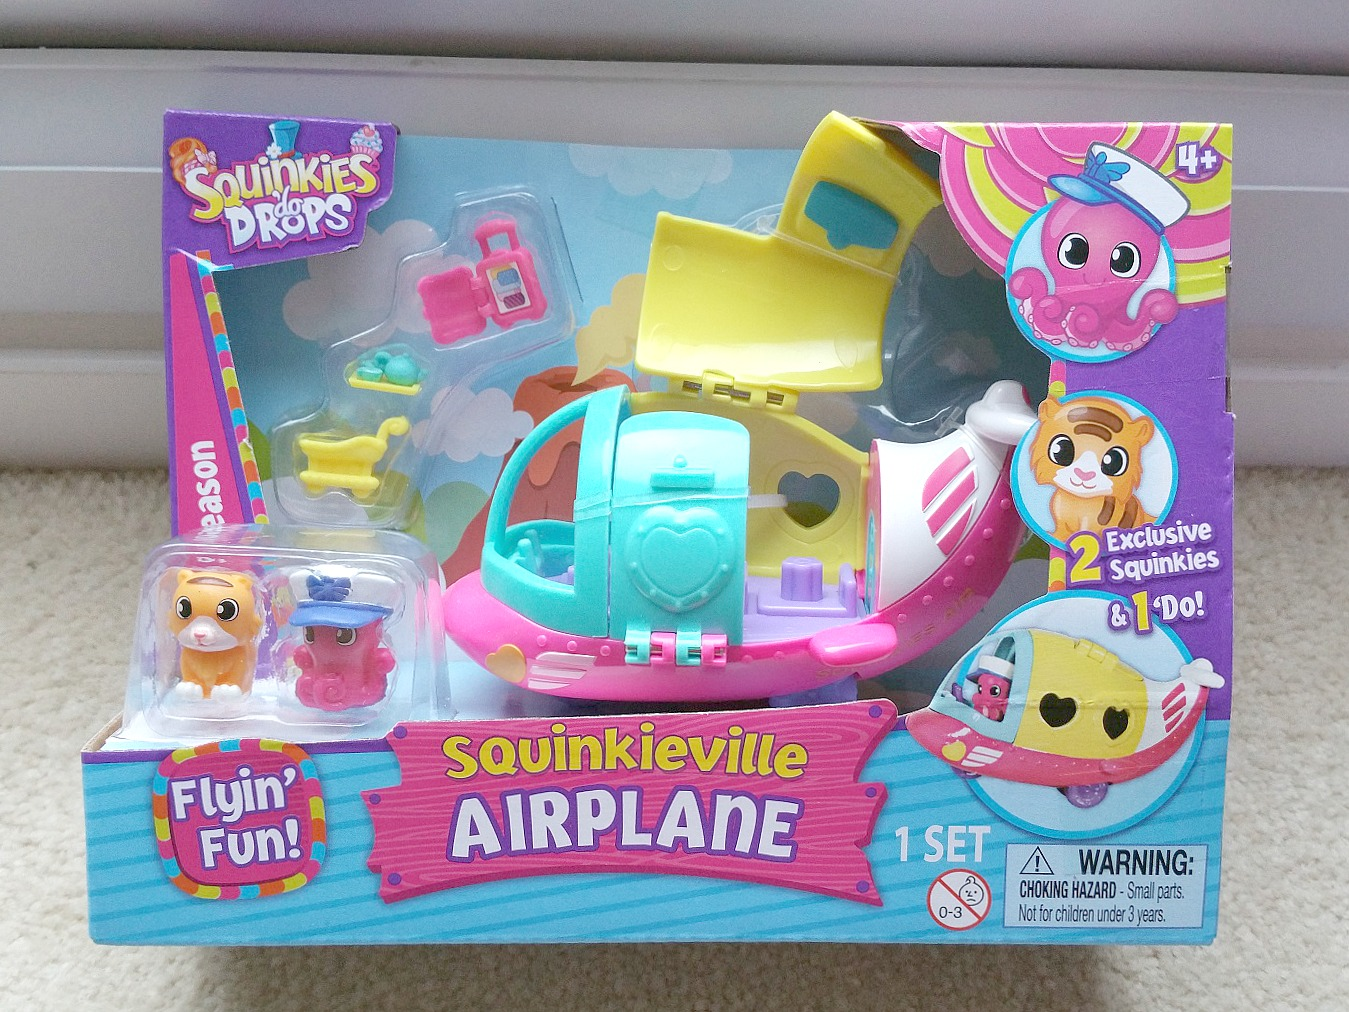 Squinkies do Drop, Squinkieville Airplane, Squinkieville Ice-cream Shop